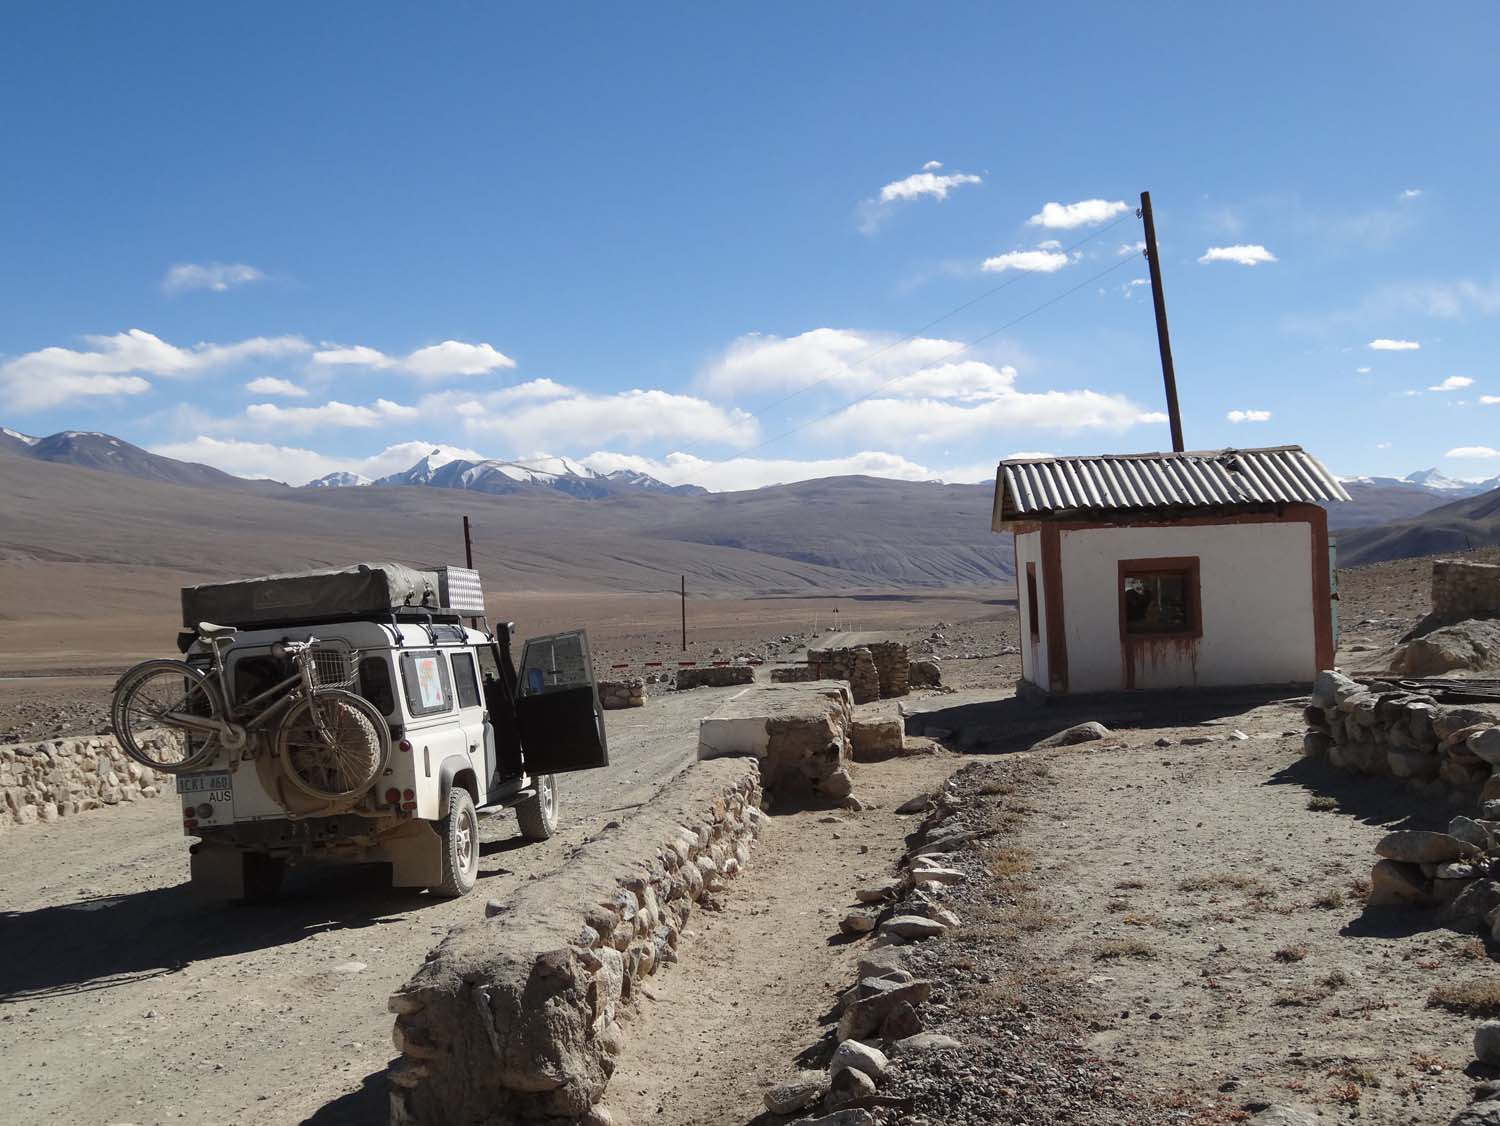 remote border post making sure no drugs cross from Afghanistan into Tajikistan